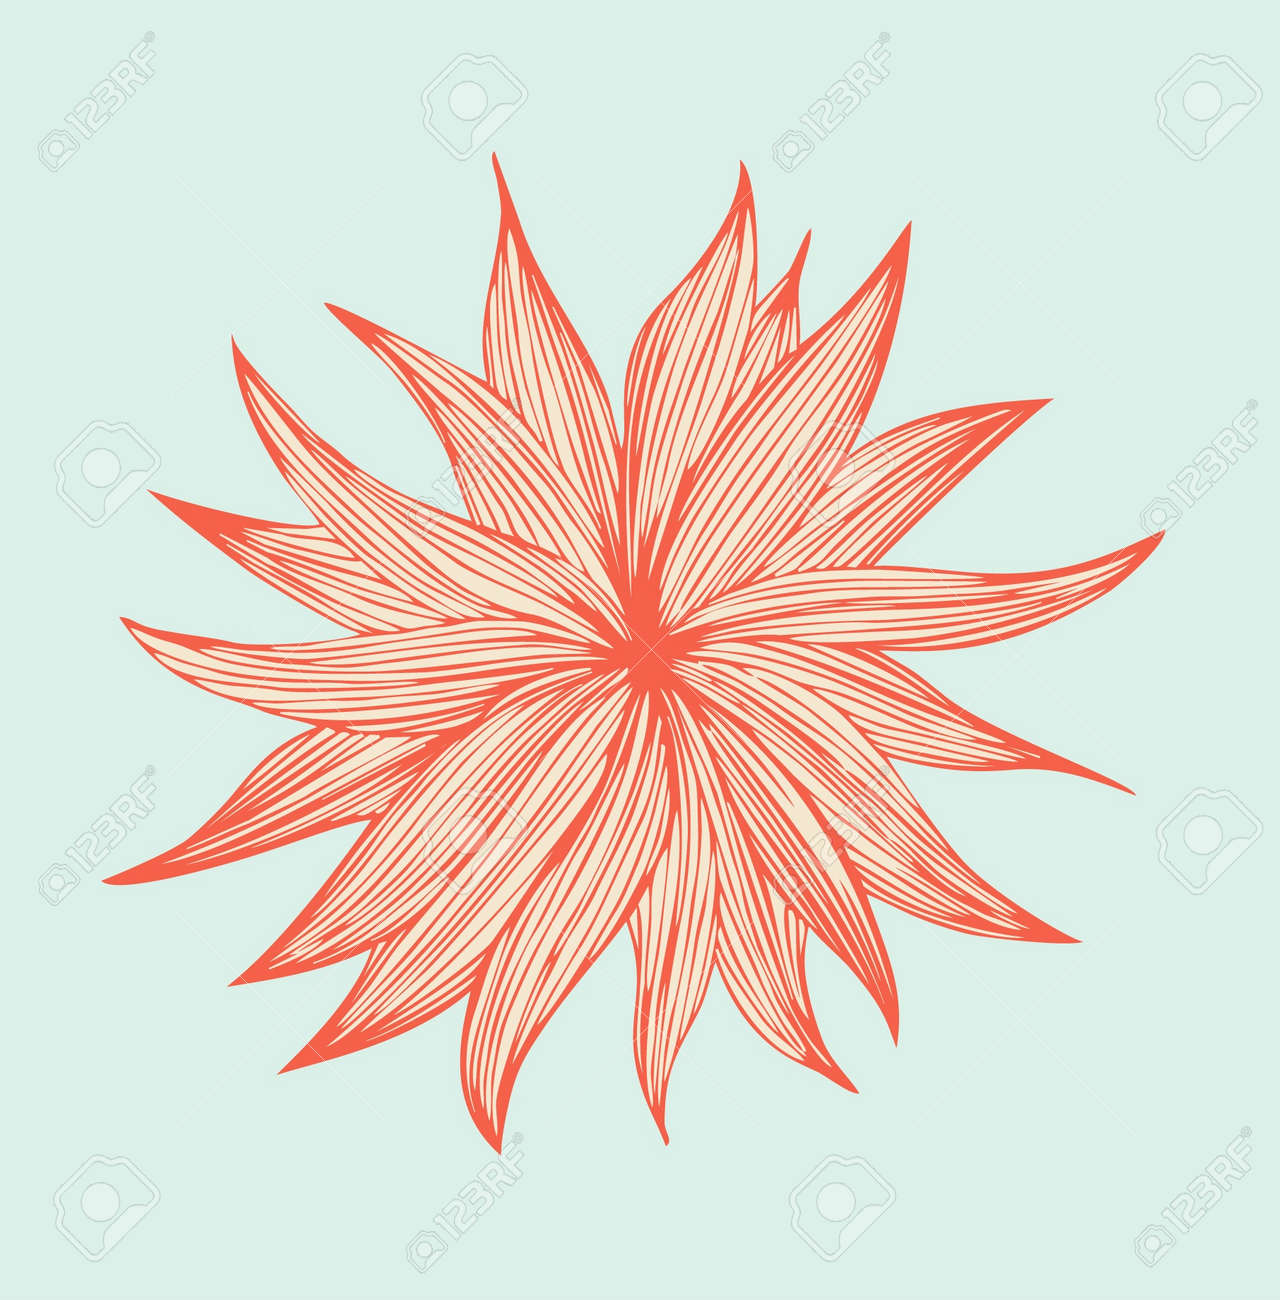 Orange linear isolated flower  Cute floral element for wrappers, covers, cards, textile, prints Stock Vector - 17210113